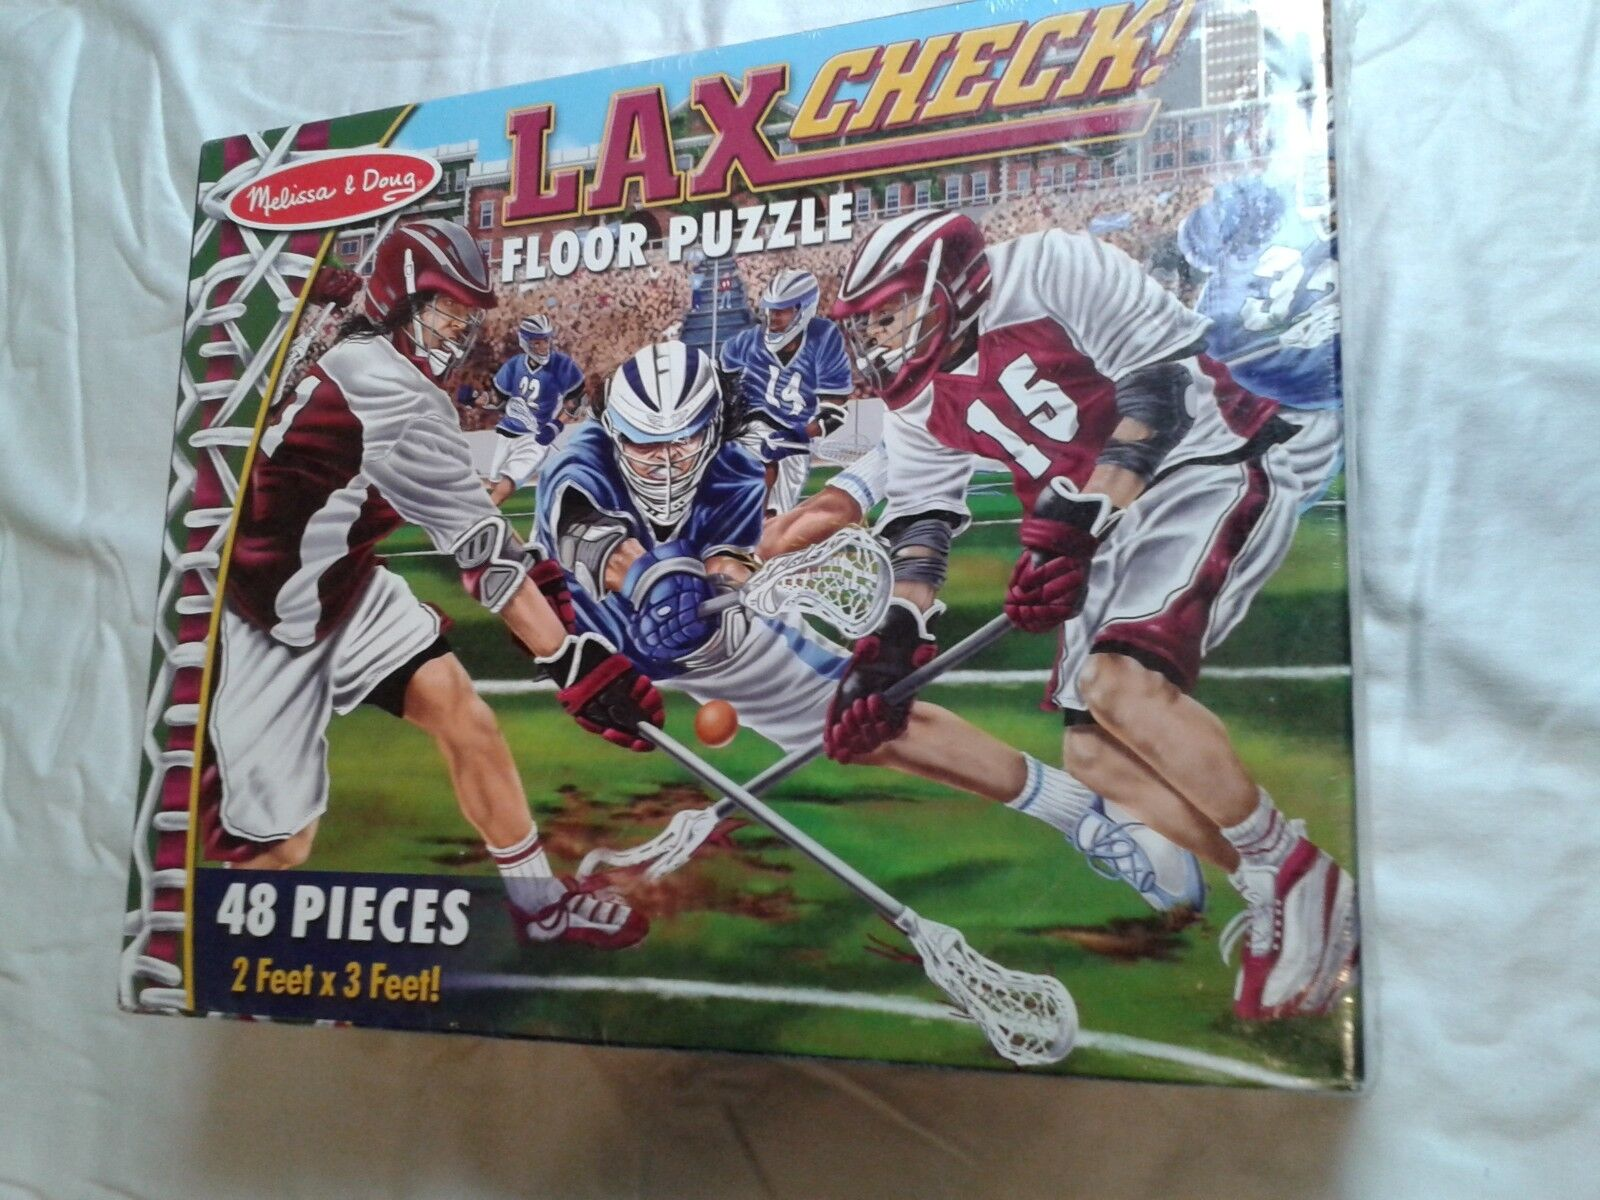 Melissa & Doug Lax carreaux  Floor Puzzle New in Box